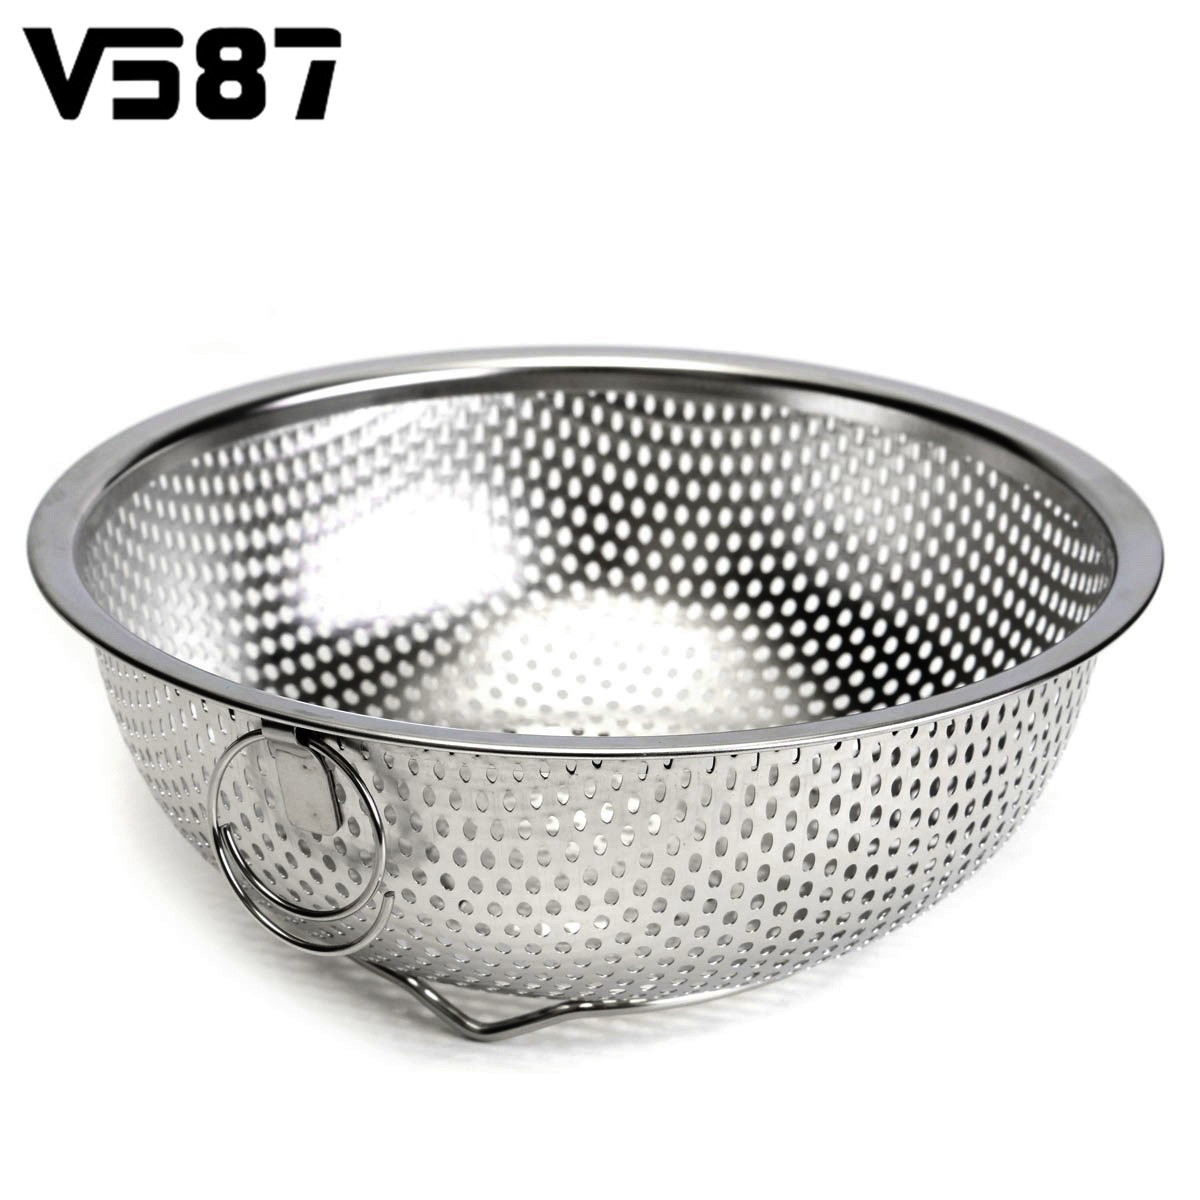 Vegetable Strainer for Sink Promotion-Shop for Promotional